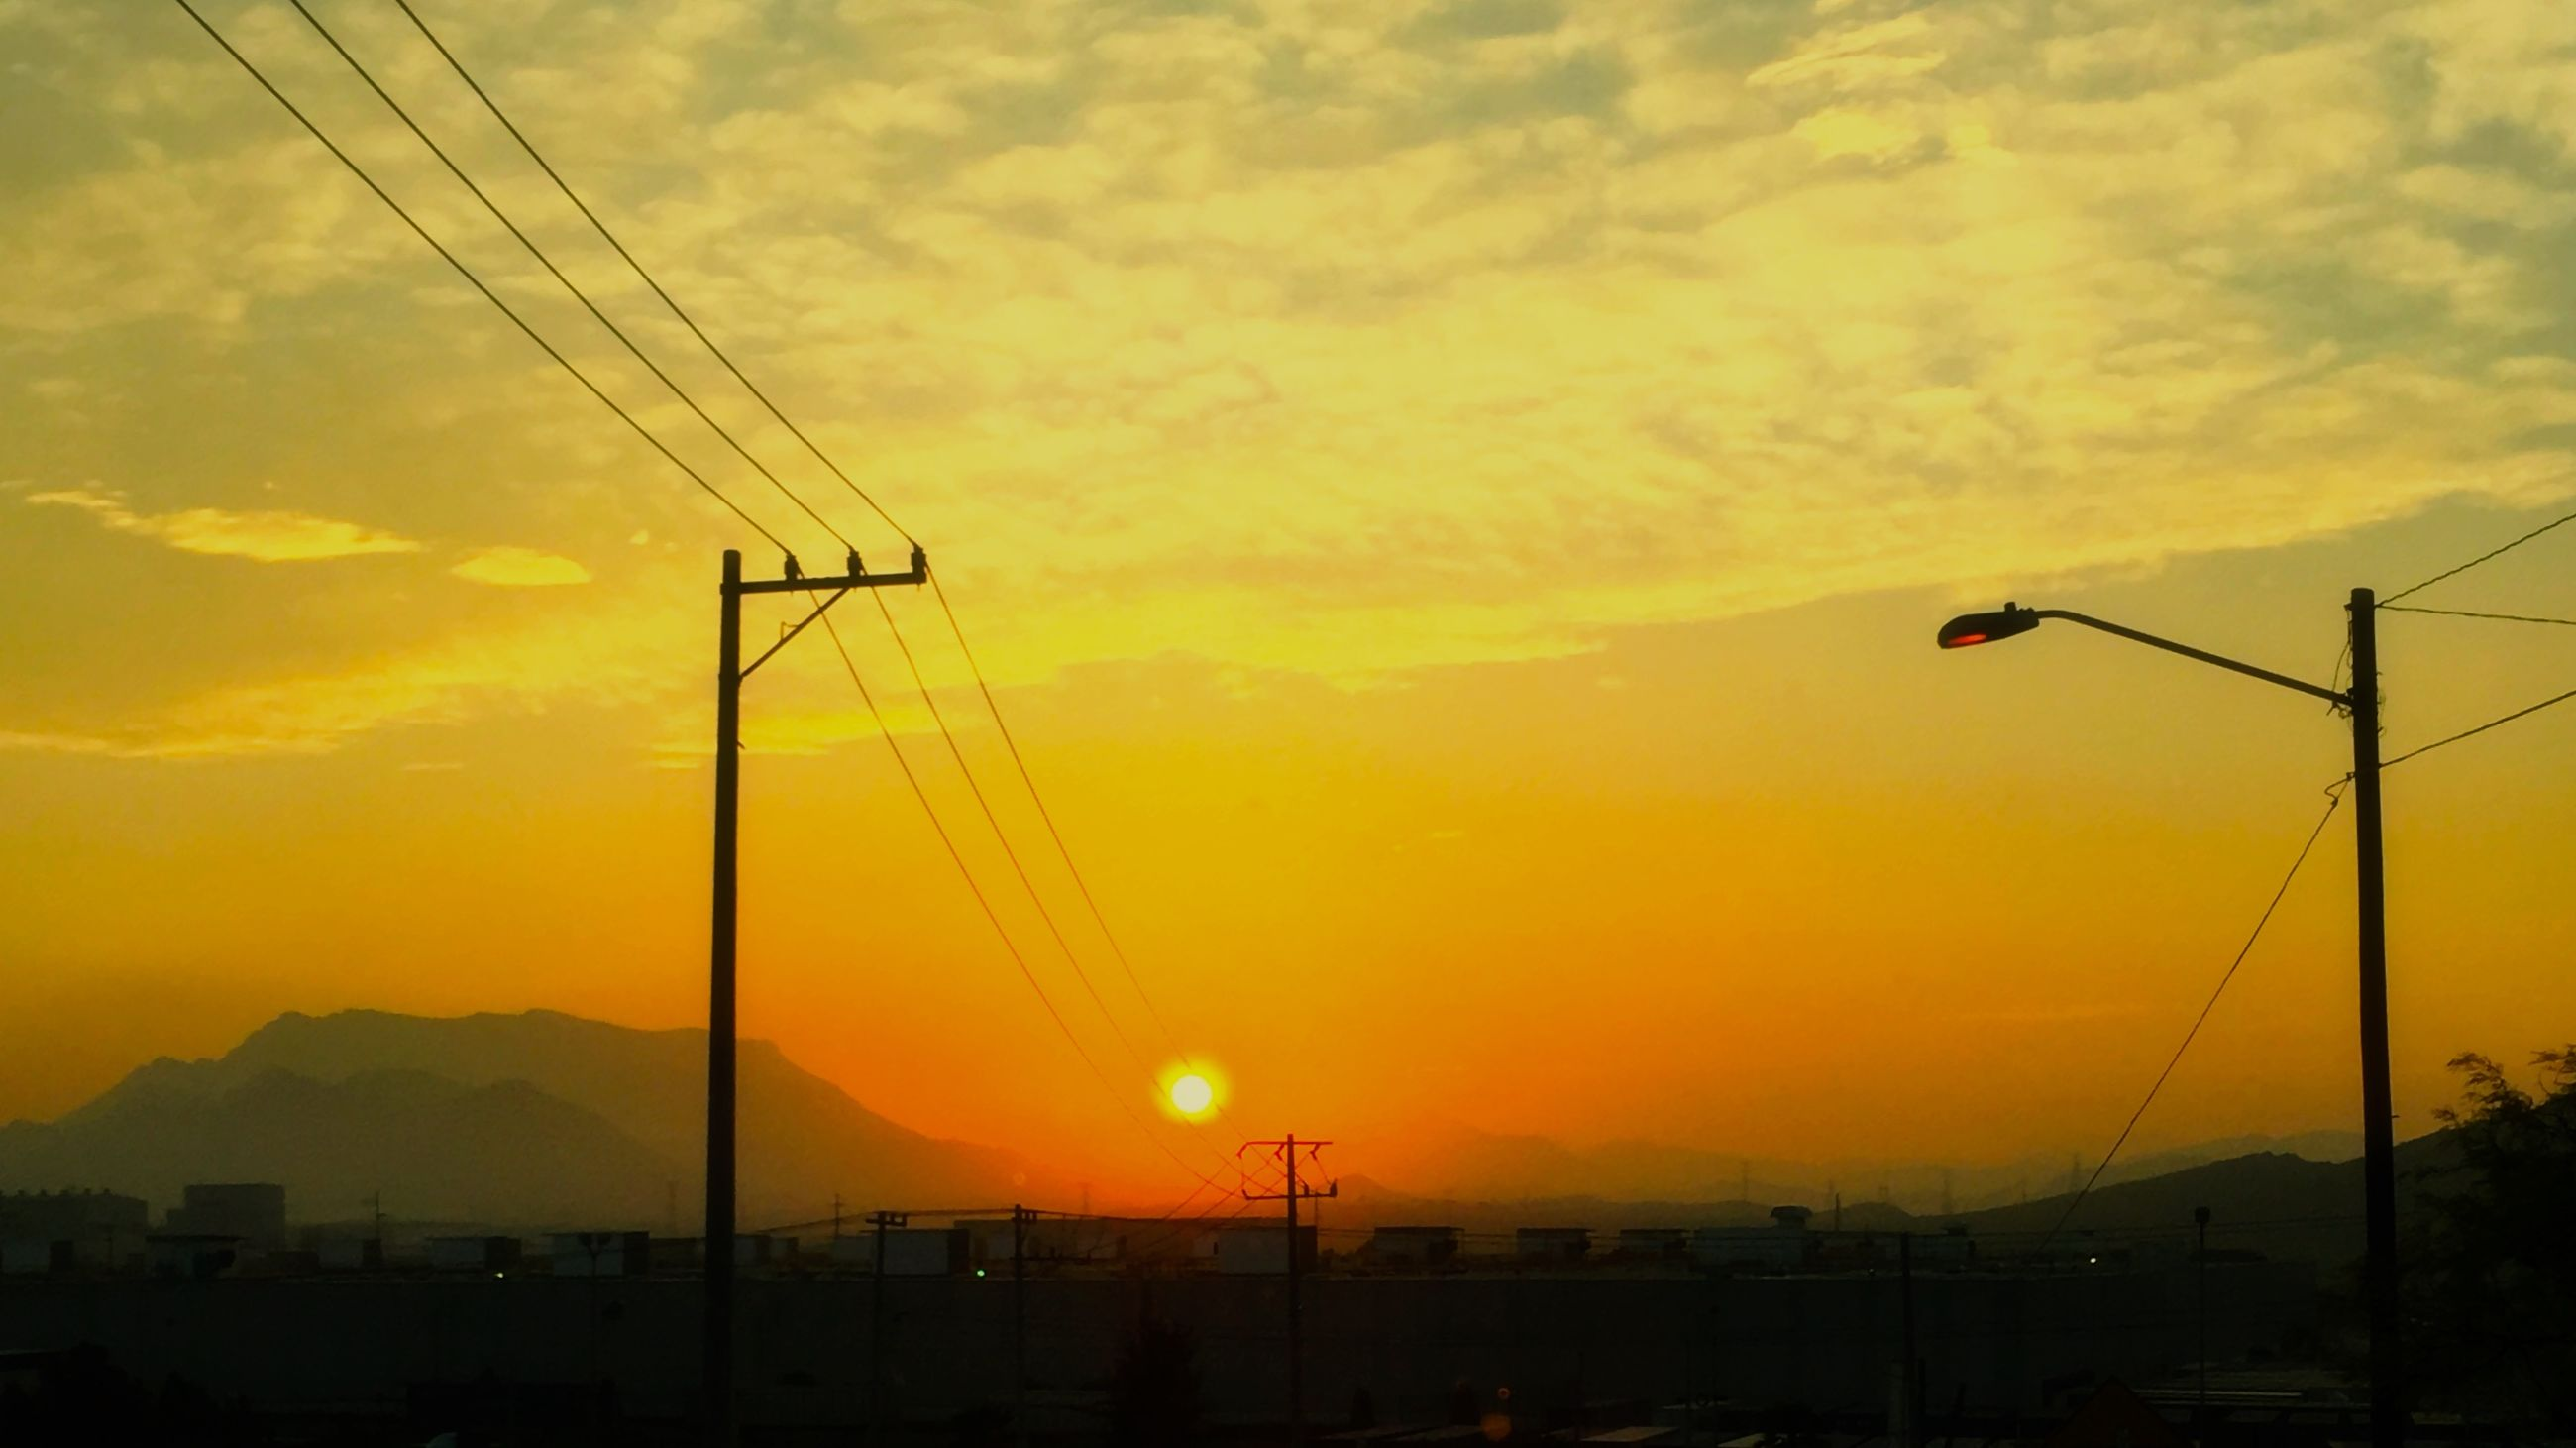 sunset, orange color, silhouette, electricity pylon, sky, power line, scenics, fuel and power generation, electricity, beauty in nature, power supply, tranquility, tranquil scene, technology, nature, idyllic, cloud - sky, connection, landscape, sun